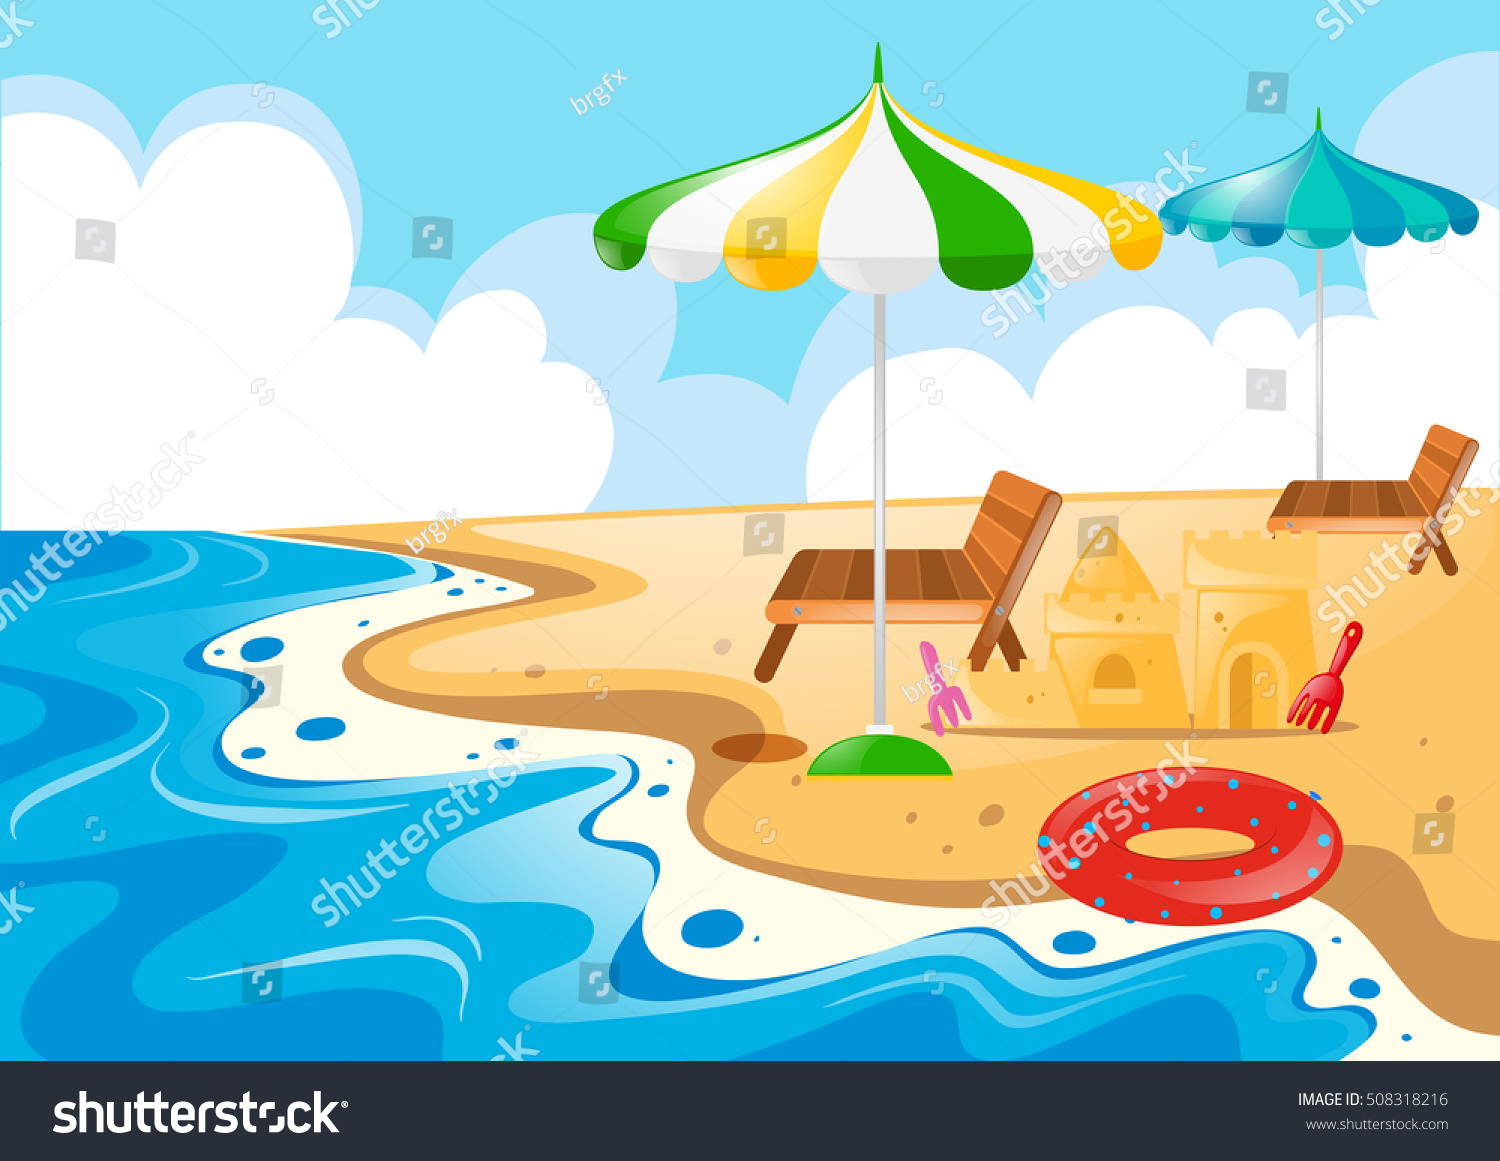 Beach Scene Chairs Umbrellas Illustration Stock Vector (Royalty Free ...